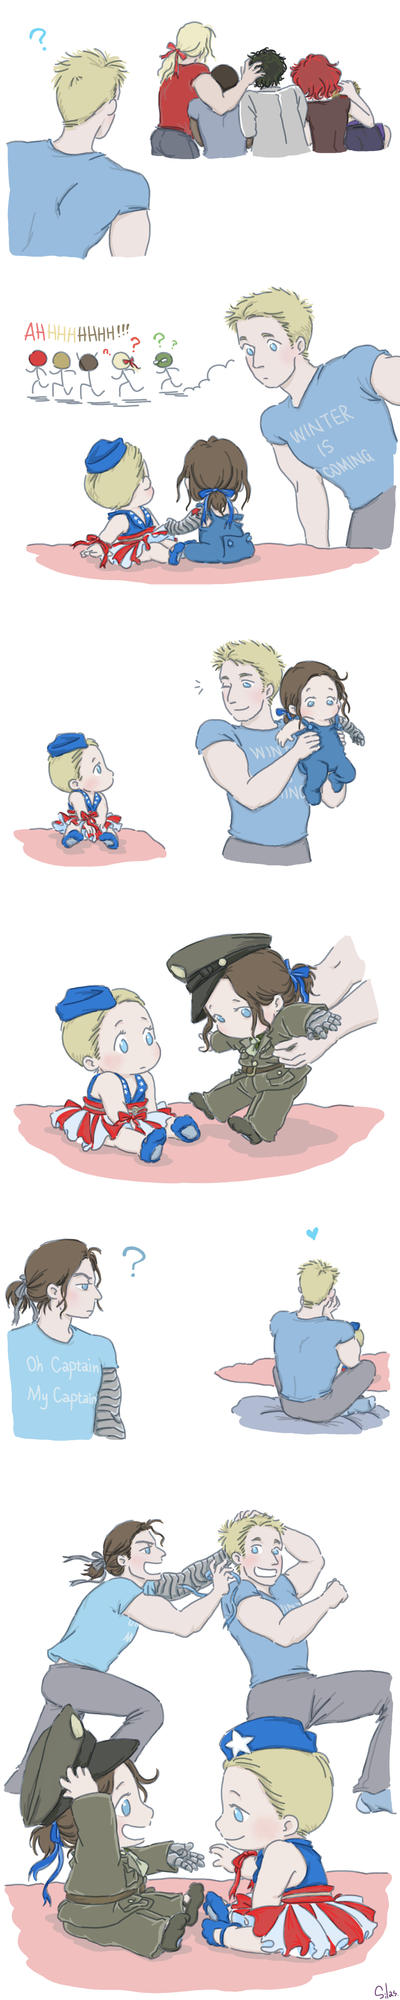 Steve and Bucky Babies: Ribbon 2 by SilasSamle